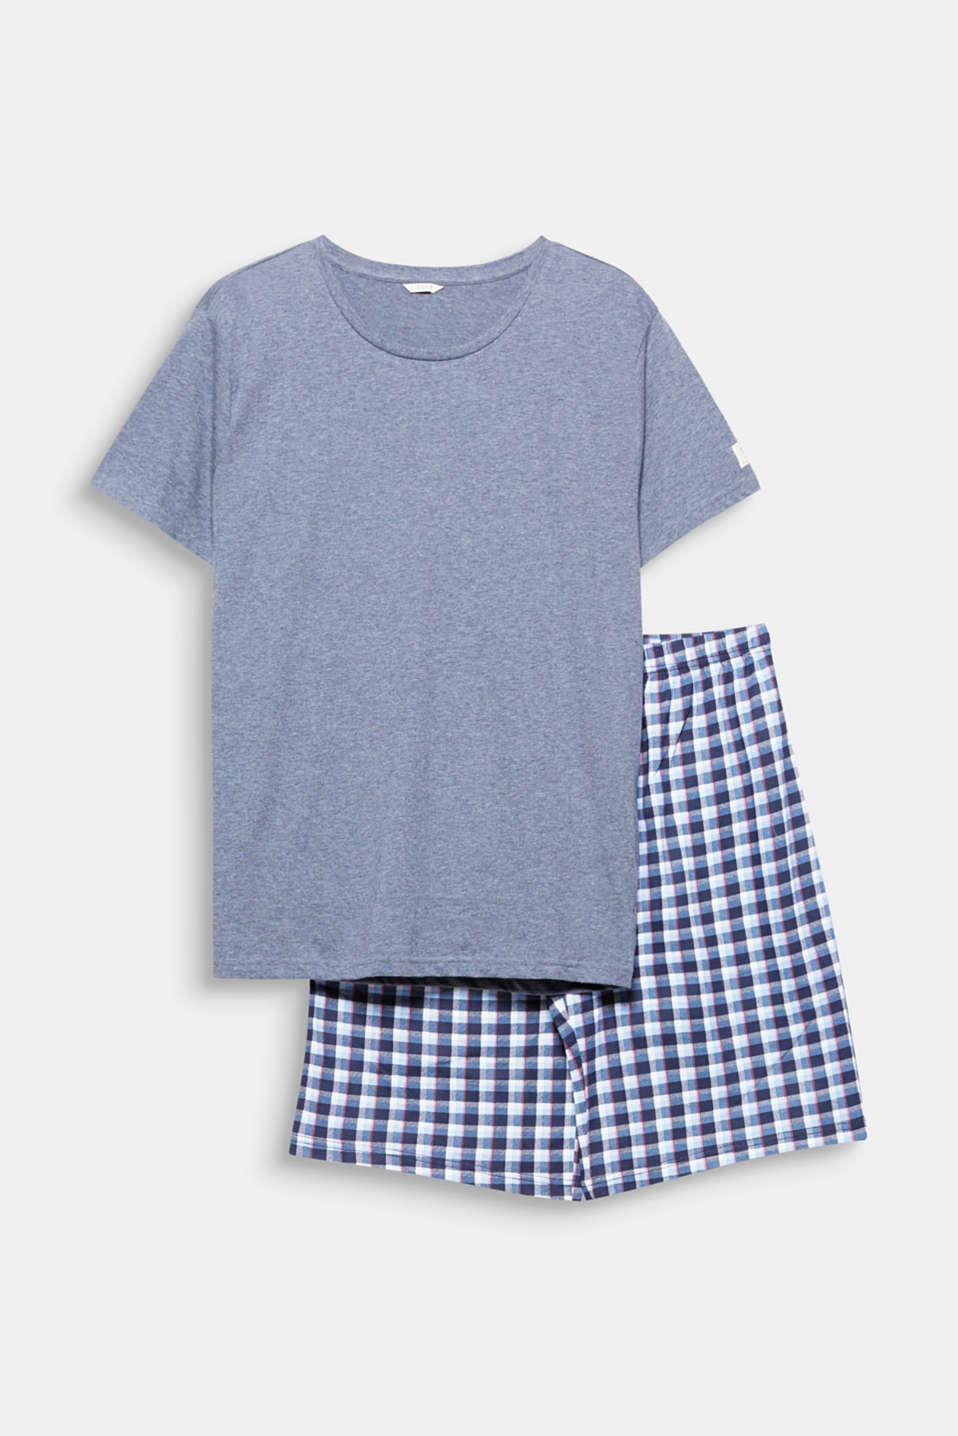 These comfy jersey pyjamas consisting of a melange T-shirt and checked shorts are sporty and timelessly modern!